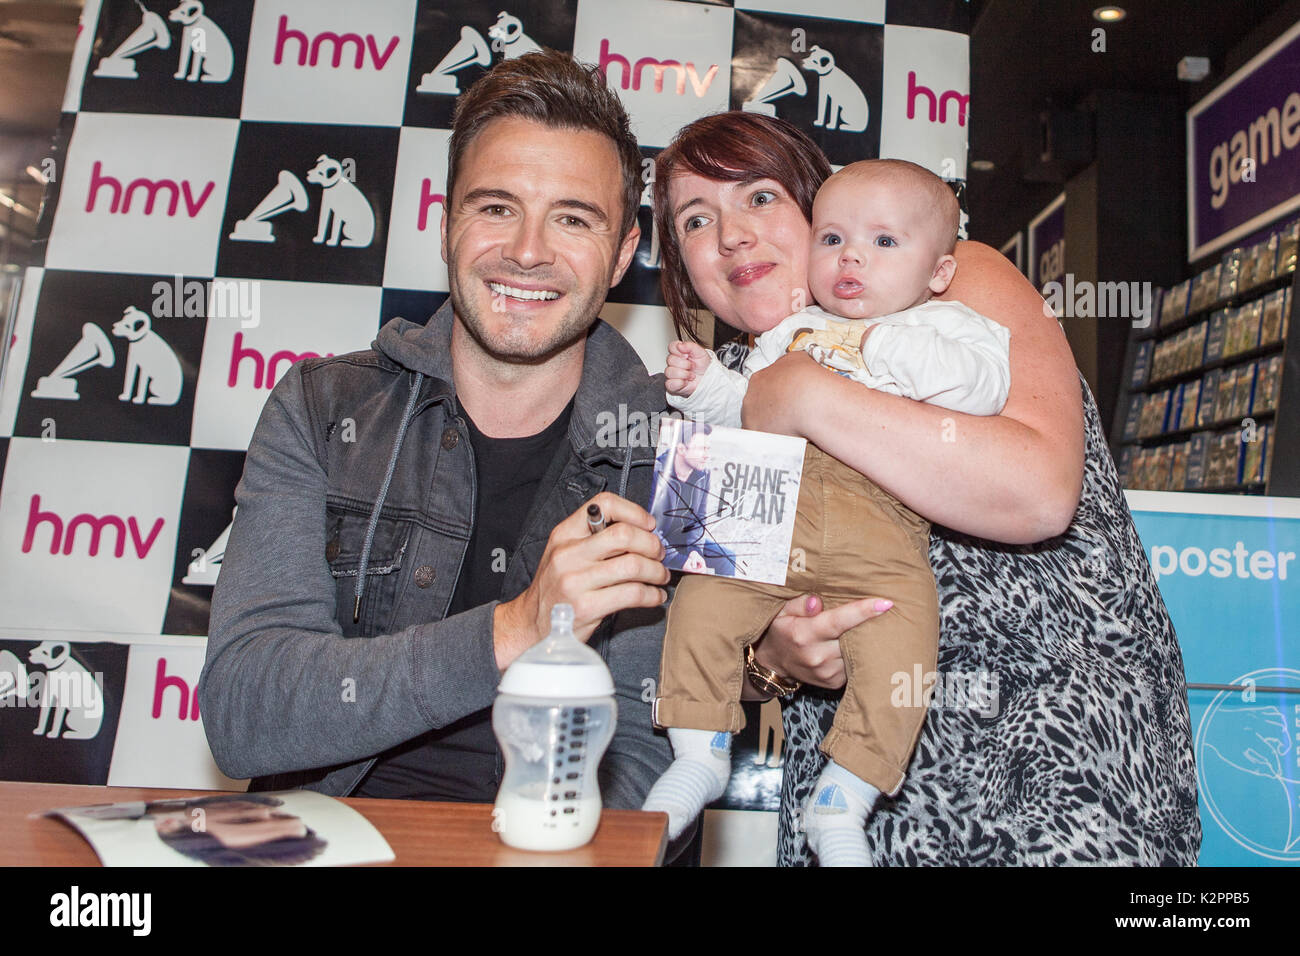 Irish Westlife Fans Stock Photos & Irish Westlife Fans Stock Images